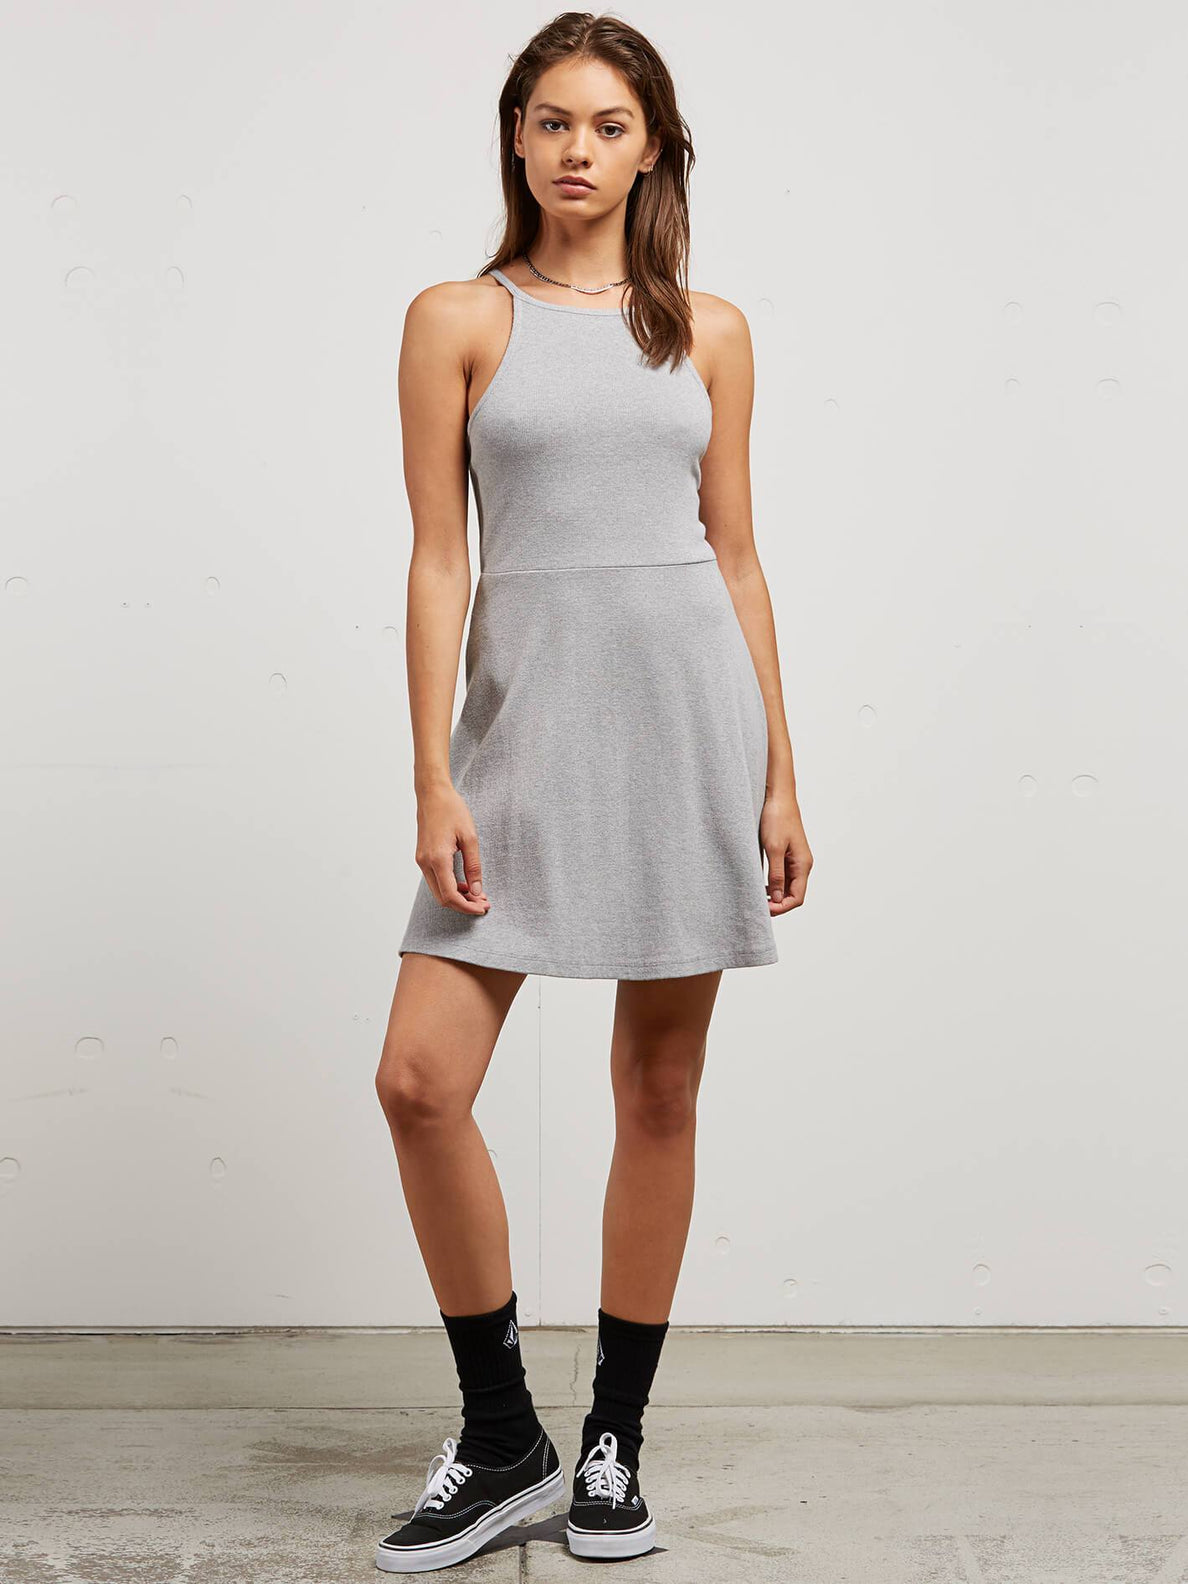 Cactus Ridge Dress In Heather Grey, Front View